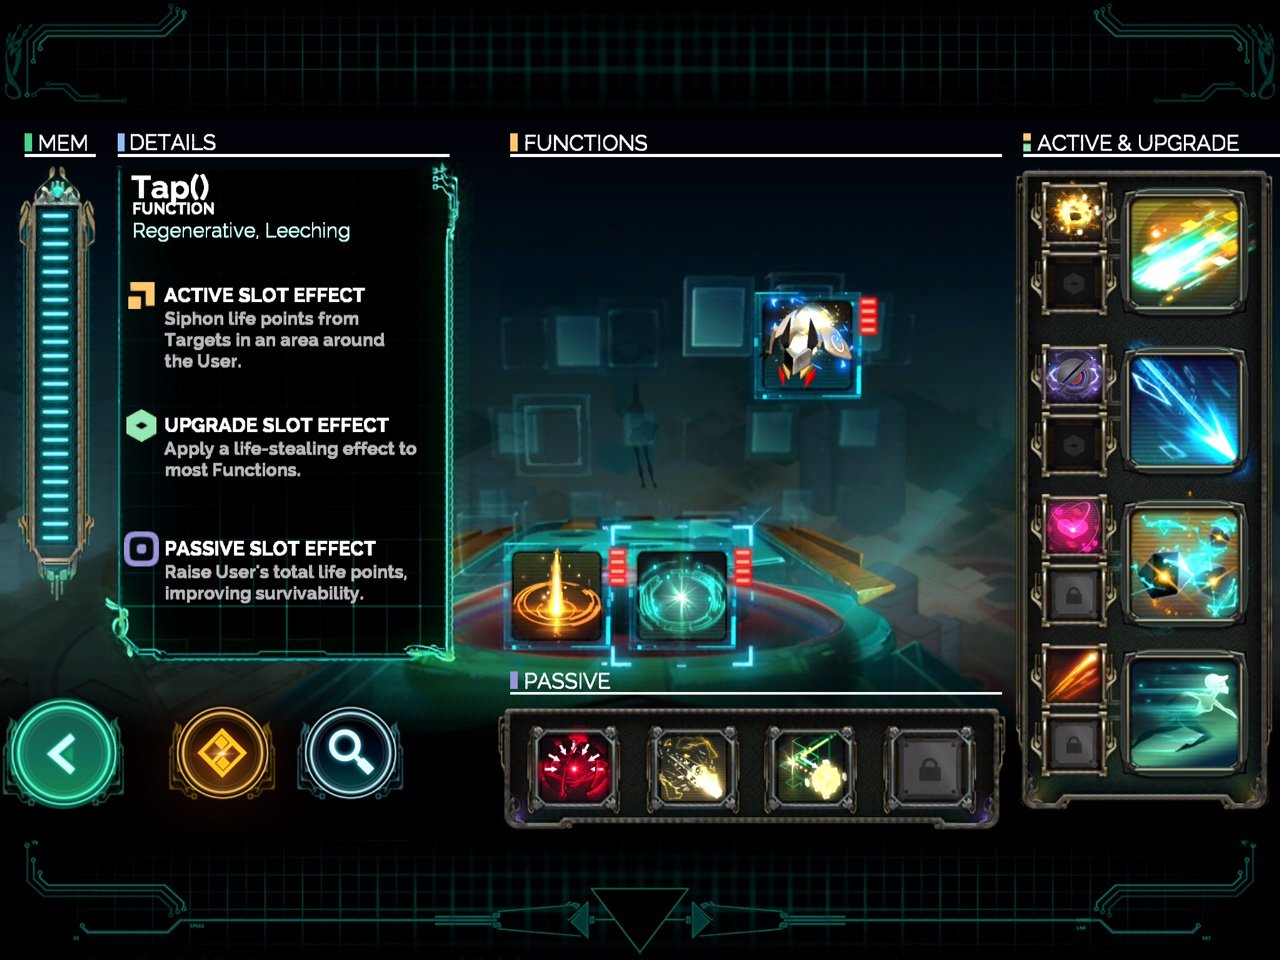 Transistor Review An Action Packed Evocative Journey In Active Tone Controls By The Rpg Elements Of Game Are Found Reds Functions Transistors Word For Skills Which Provide Abundance Ways To Fight Enemies